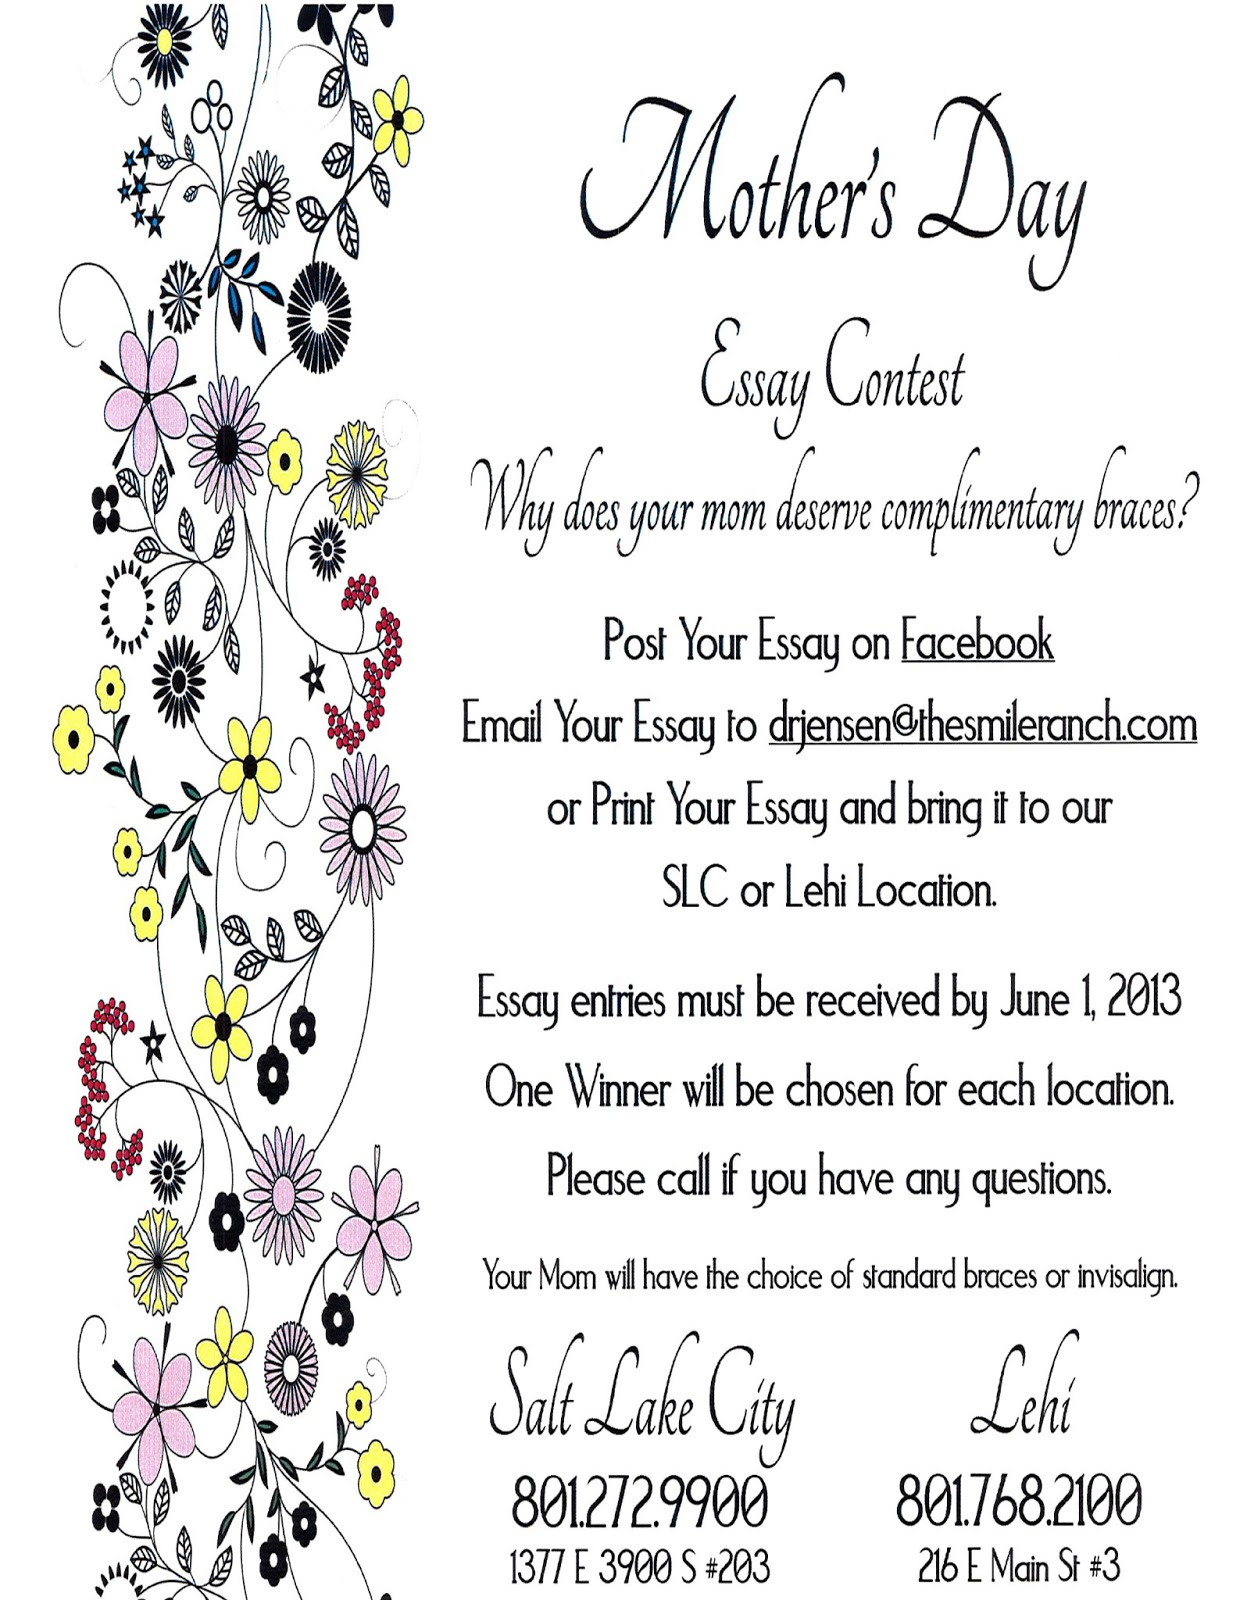 001 Mothersdaycontest Essay Example Mothers Top Day In Kannada Contest Mother's Telugu Full